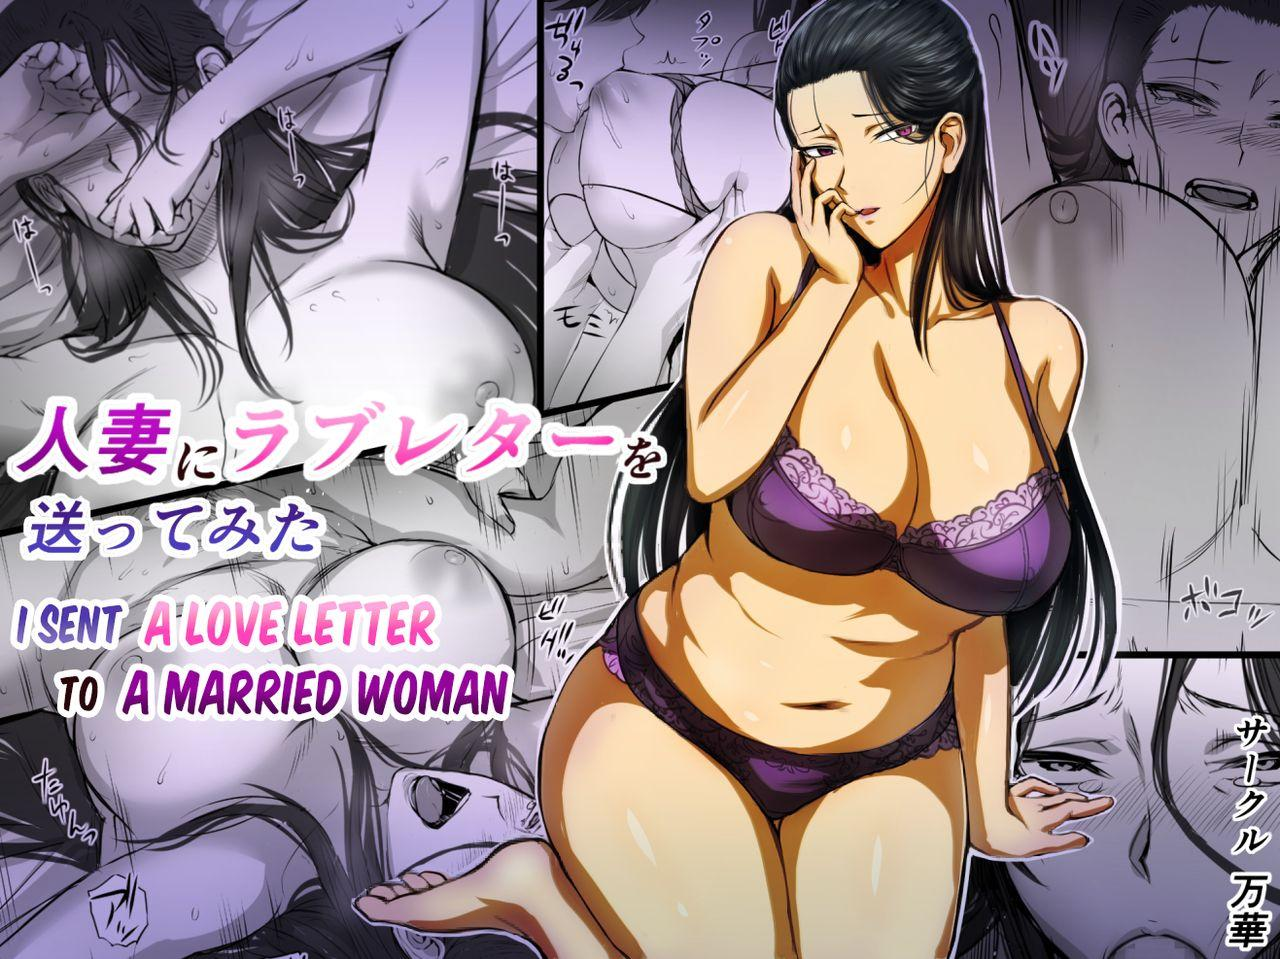 Hitozuma ni Love Letter o Okutte Mita | I sent a love letter to a married woman 0